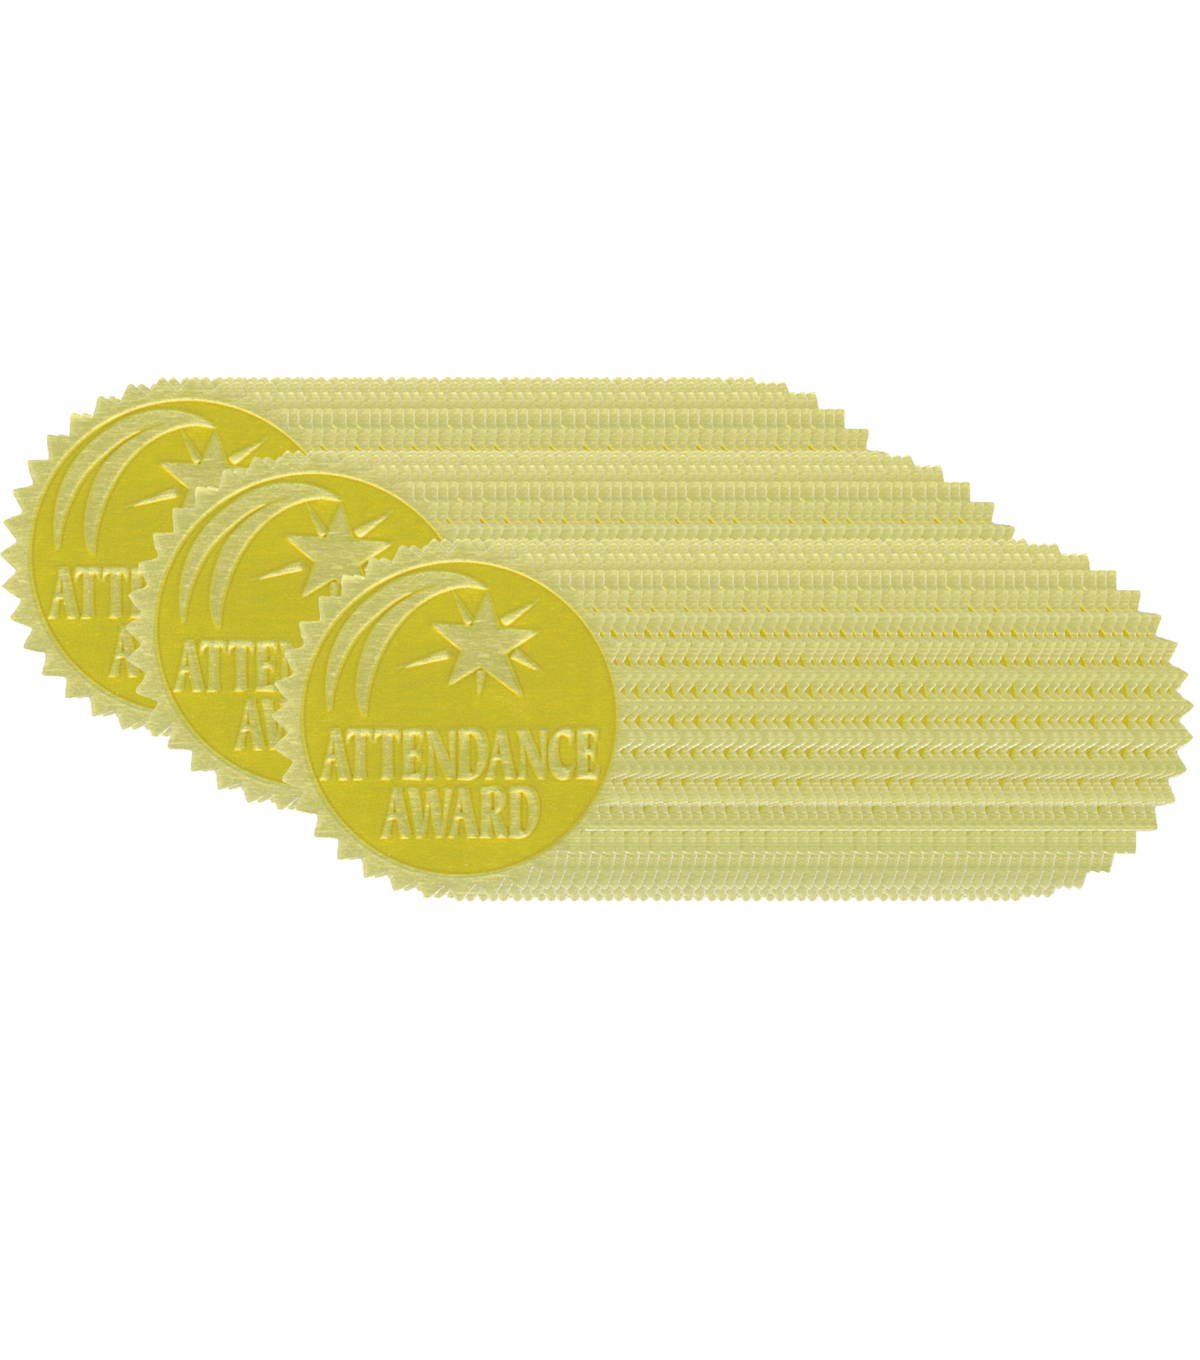 Hayes Gold Foil Embossed Seals, Attendance Award, 54 Per Pack, 3 Packs